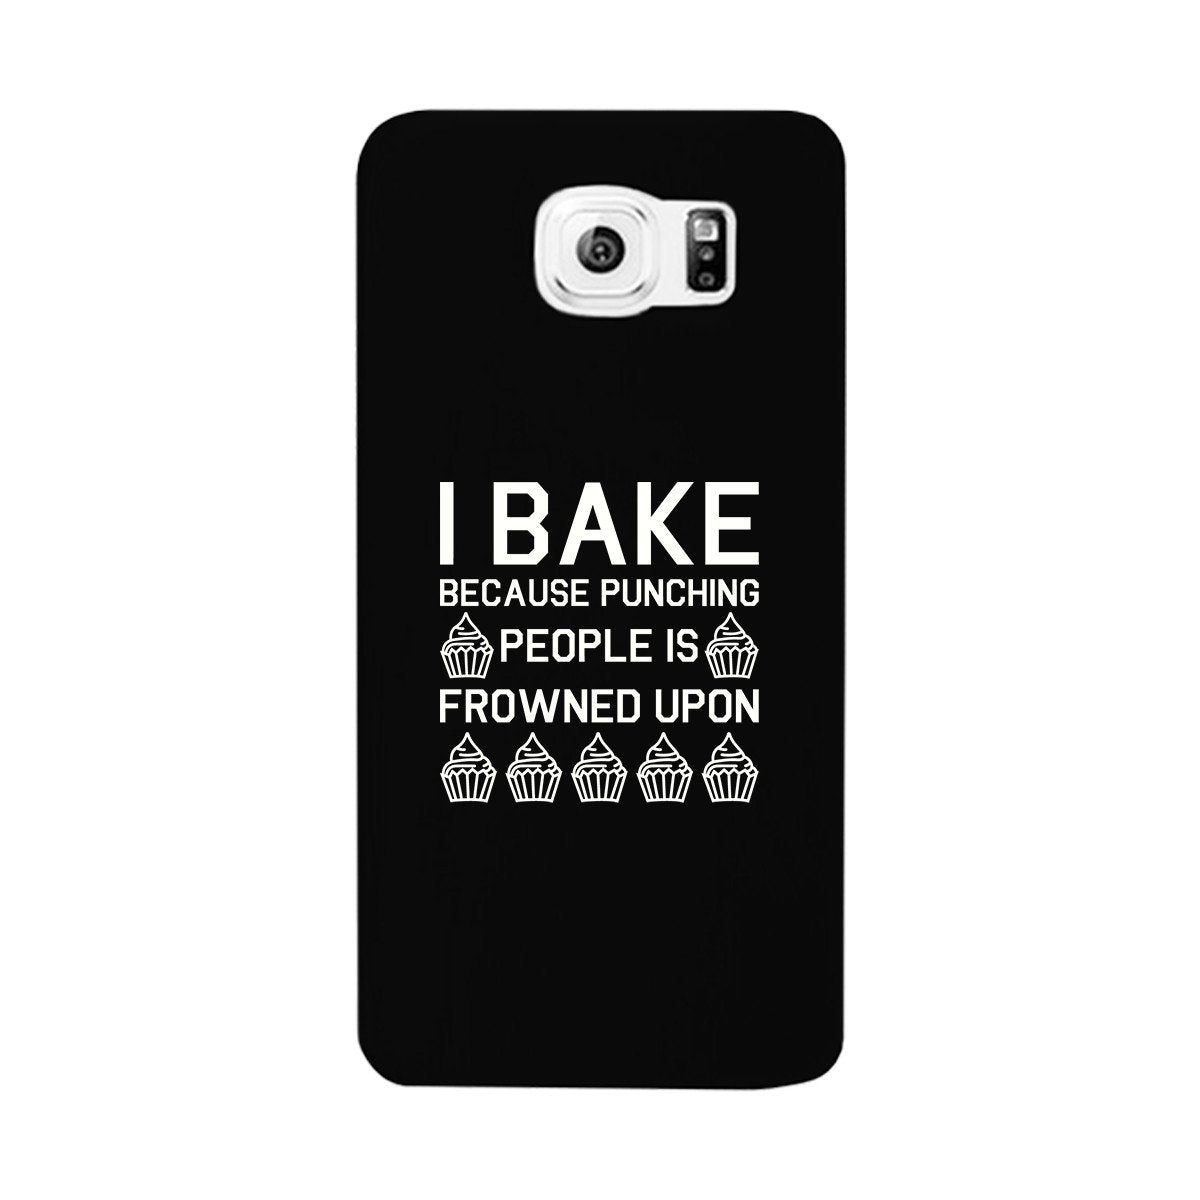 I Bake Because Black Backing Cute Phone Cases For Apple, Samsung Galaxy, LG, HTC